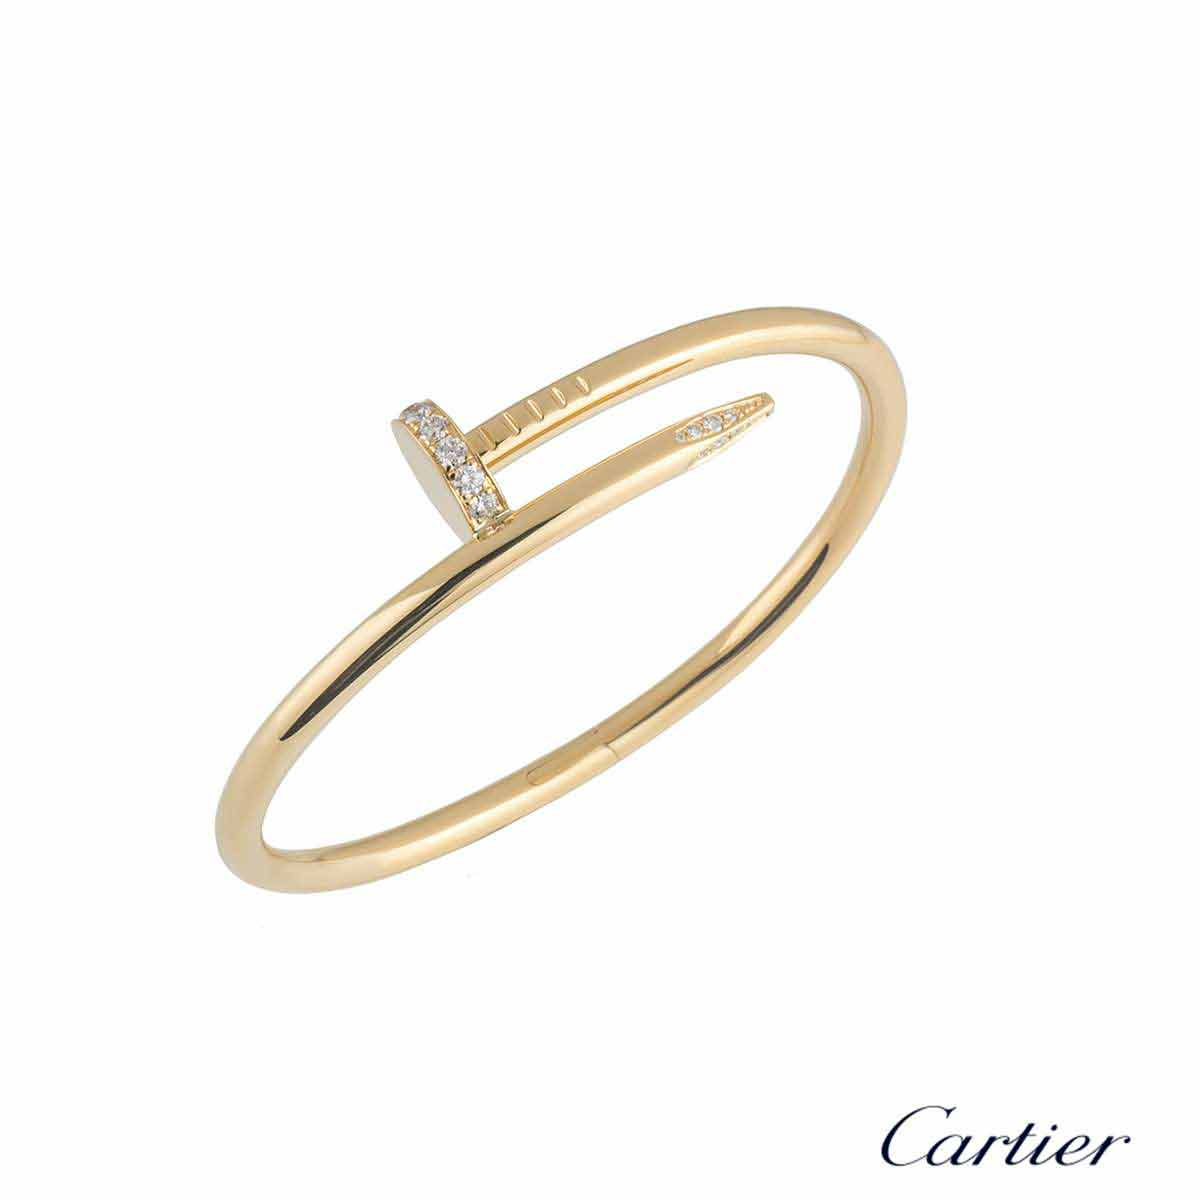 Cartier Yellow Gold Diamond Juste Un Clou Bracelet Size 17 B6048617